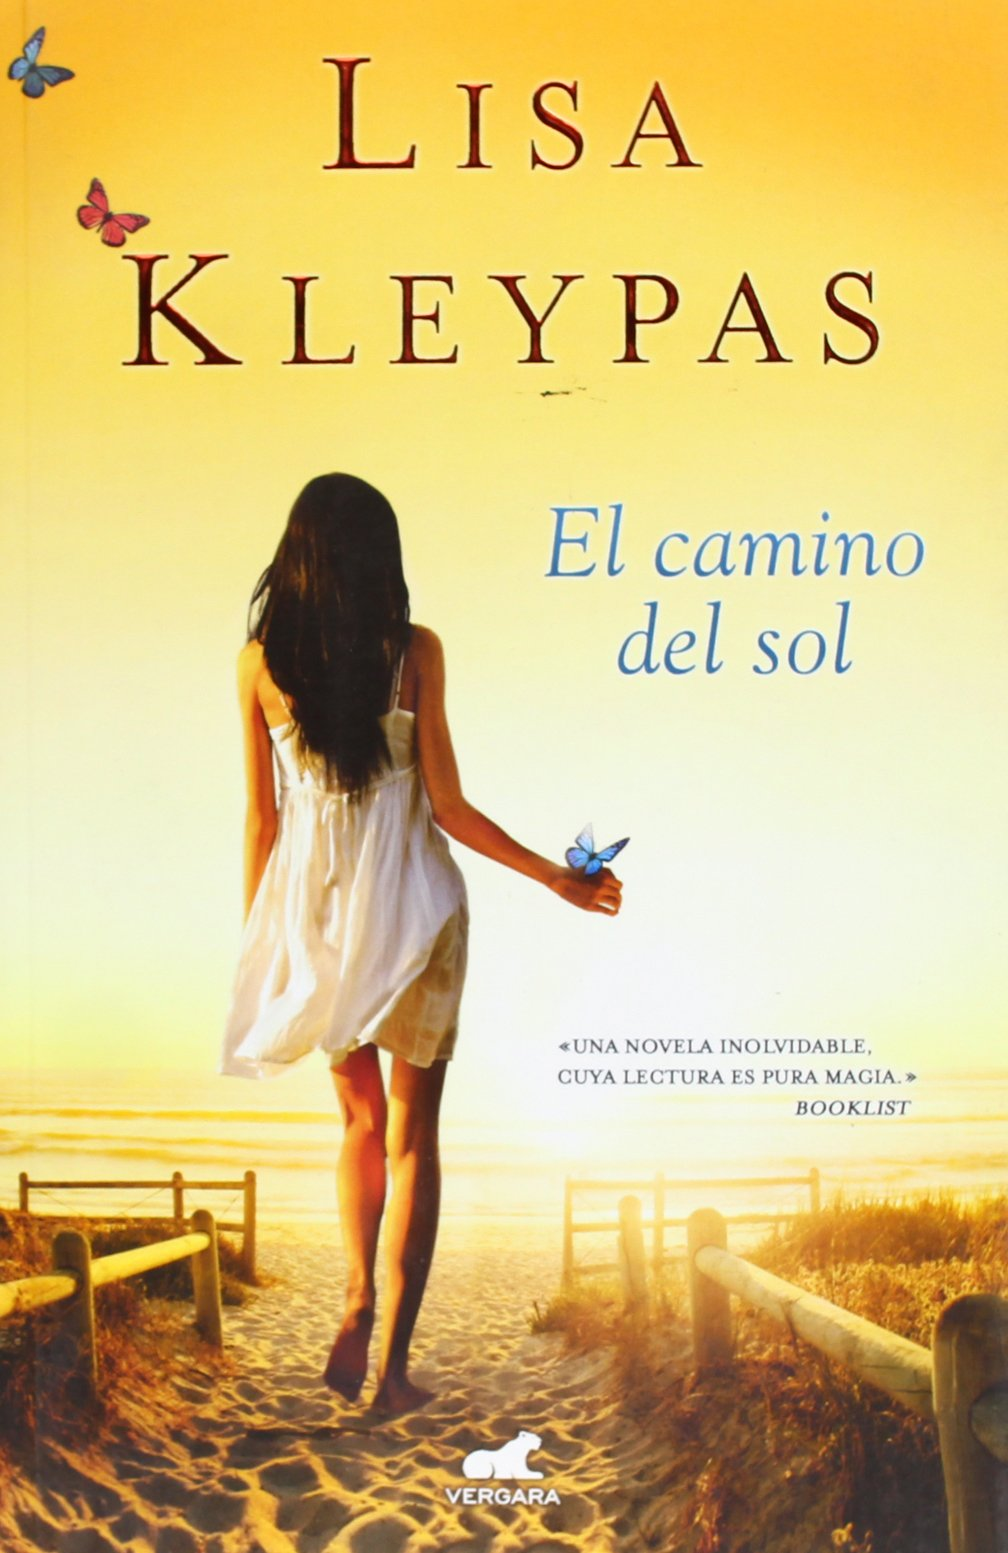 El camino del sol (Friday Harbor 2) (AMOR Y AVENTURA): Amazon.es: Lisa Kleypas: Libros